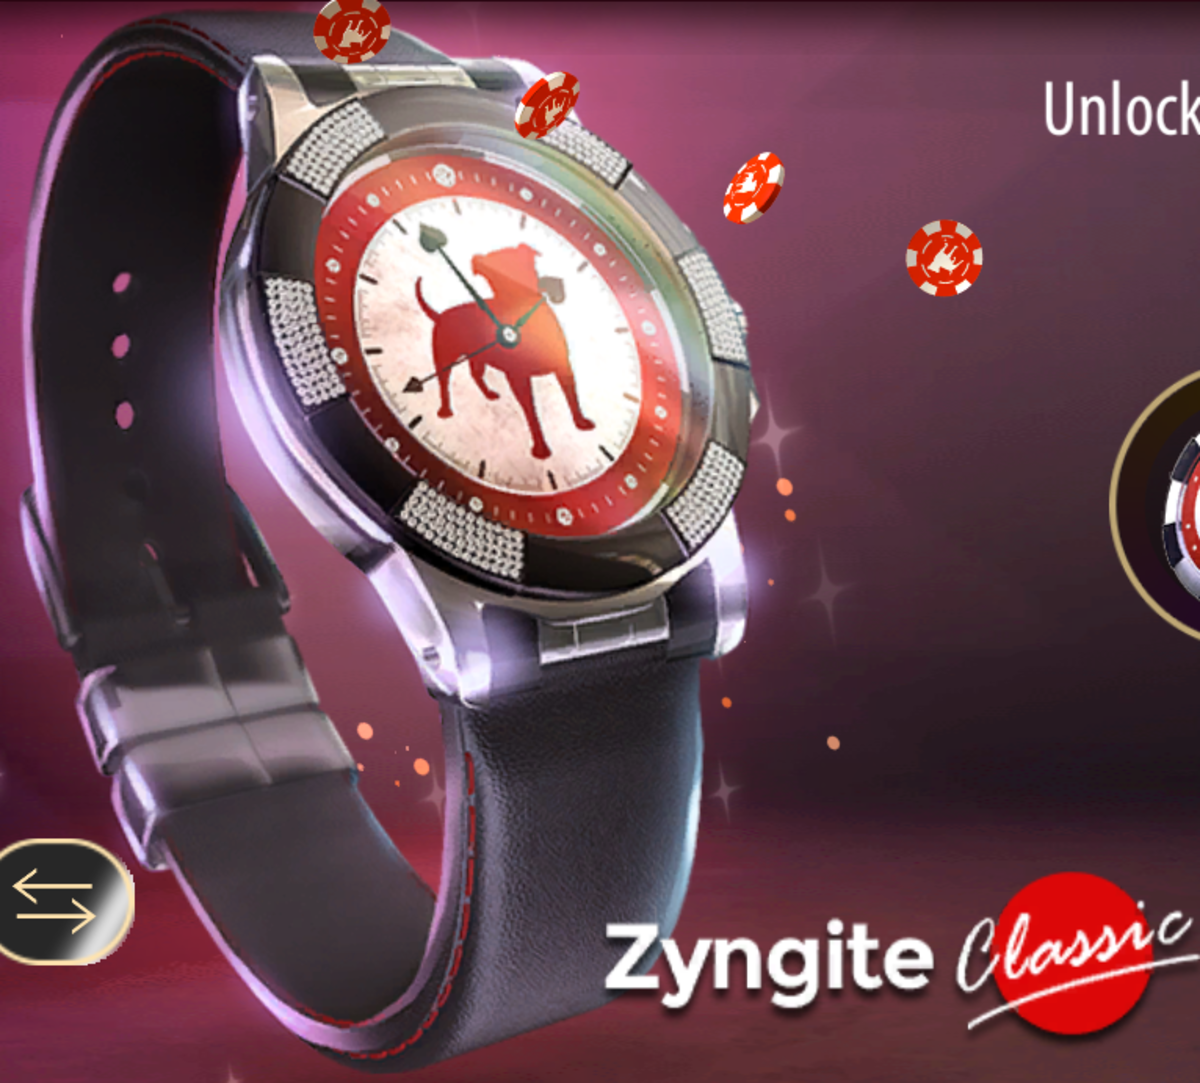 This is the black version of the first poker watch. This is the Zyngite Classic watch.